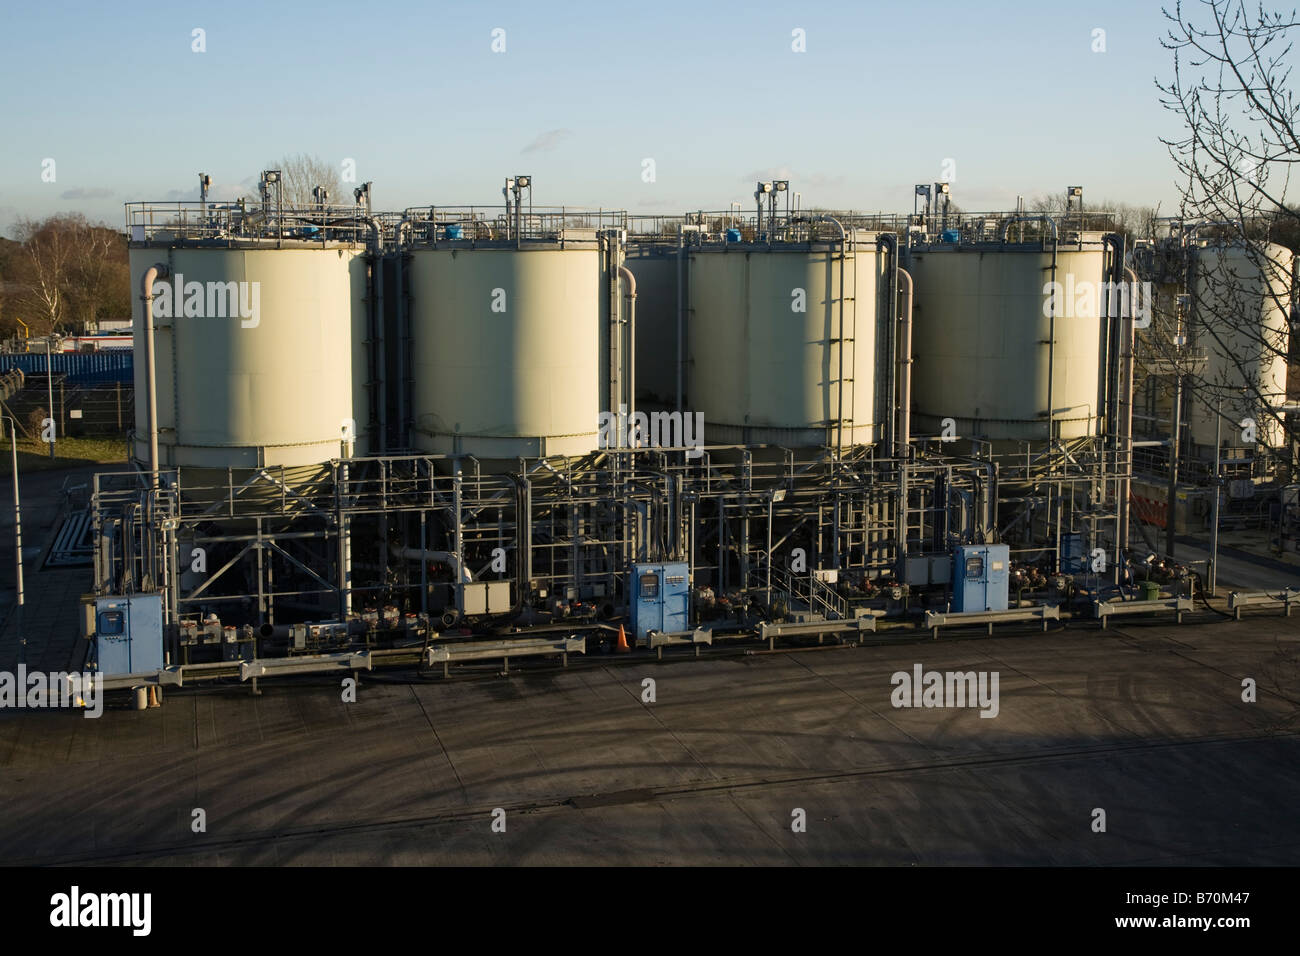 Water vessels at Thames Water treatment works, Kempton Park, Middlesex. UK. (44) Stock Photo